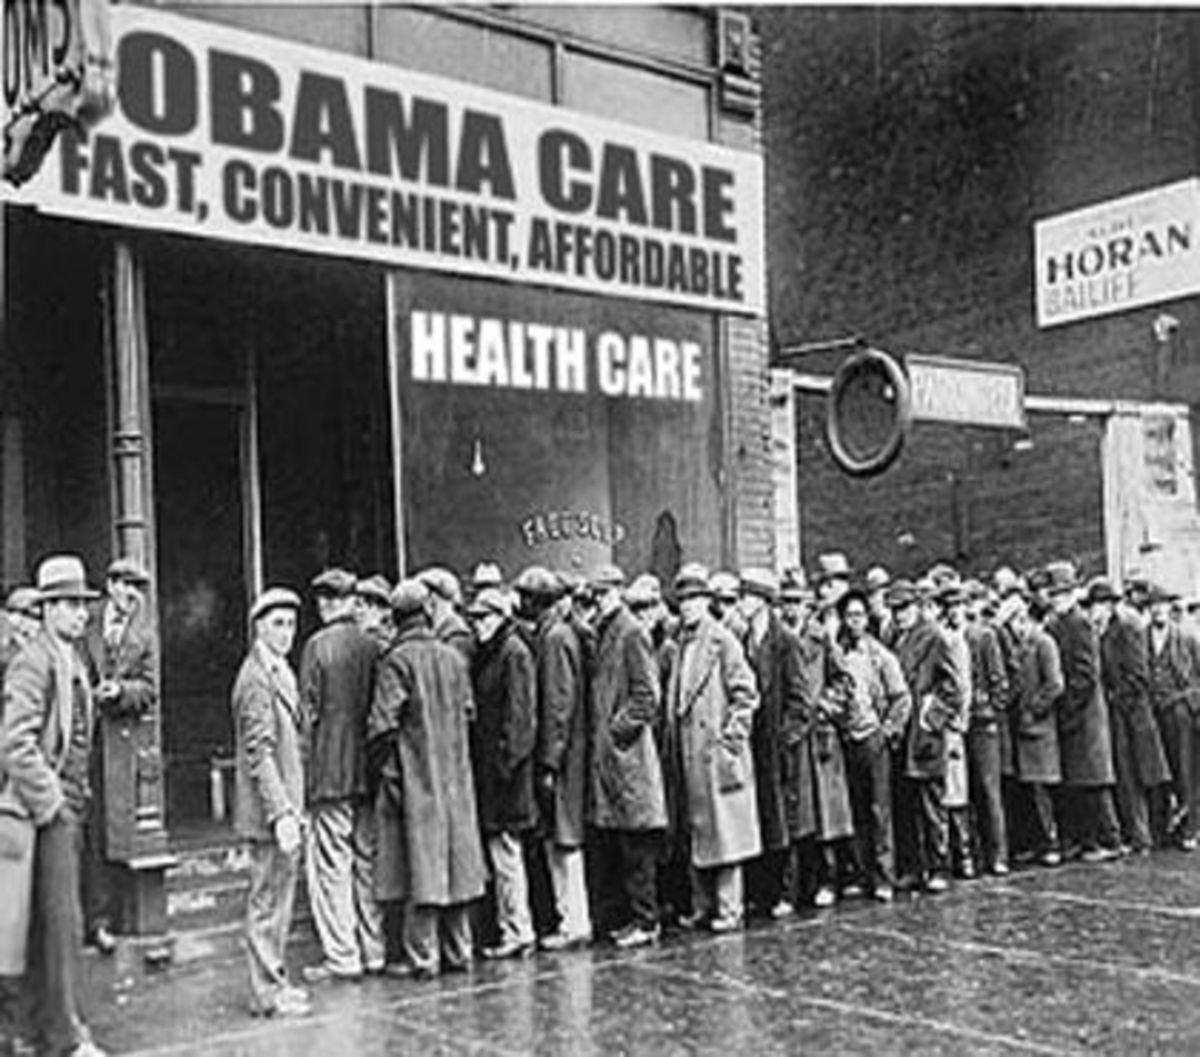 RATIONED HEALTH CARE PRODUCED LONG LINES